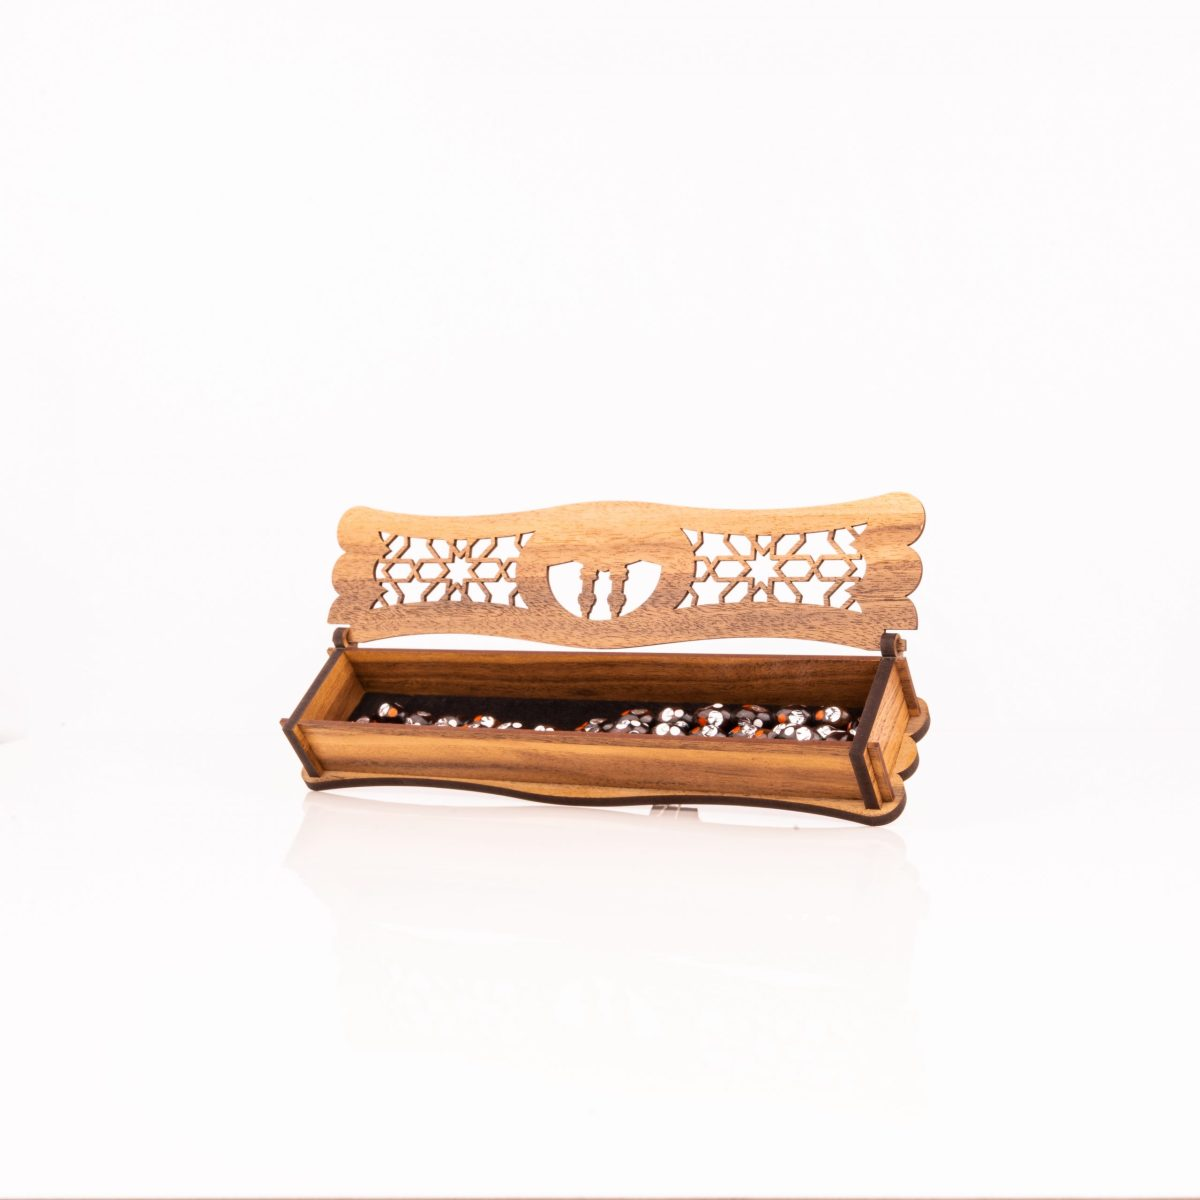 Subha Wooden Box With Holy Mecca Engravings (نسخة)